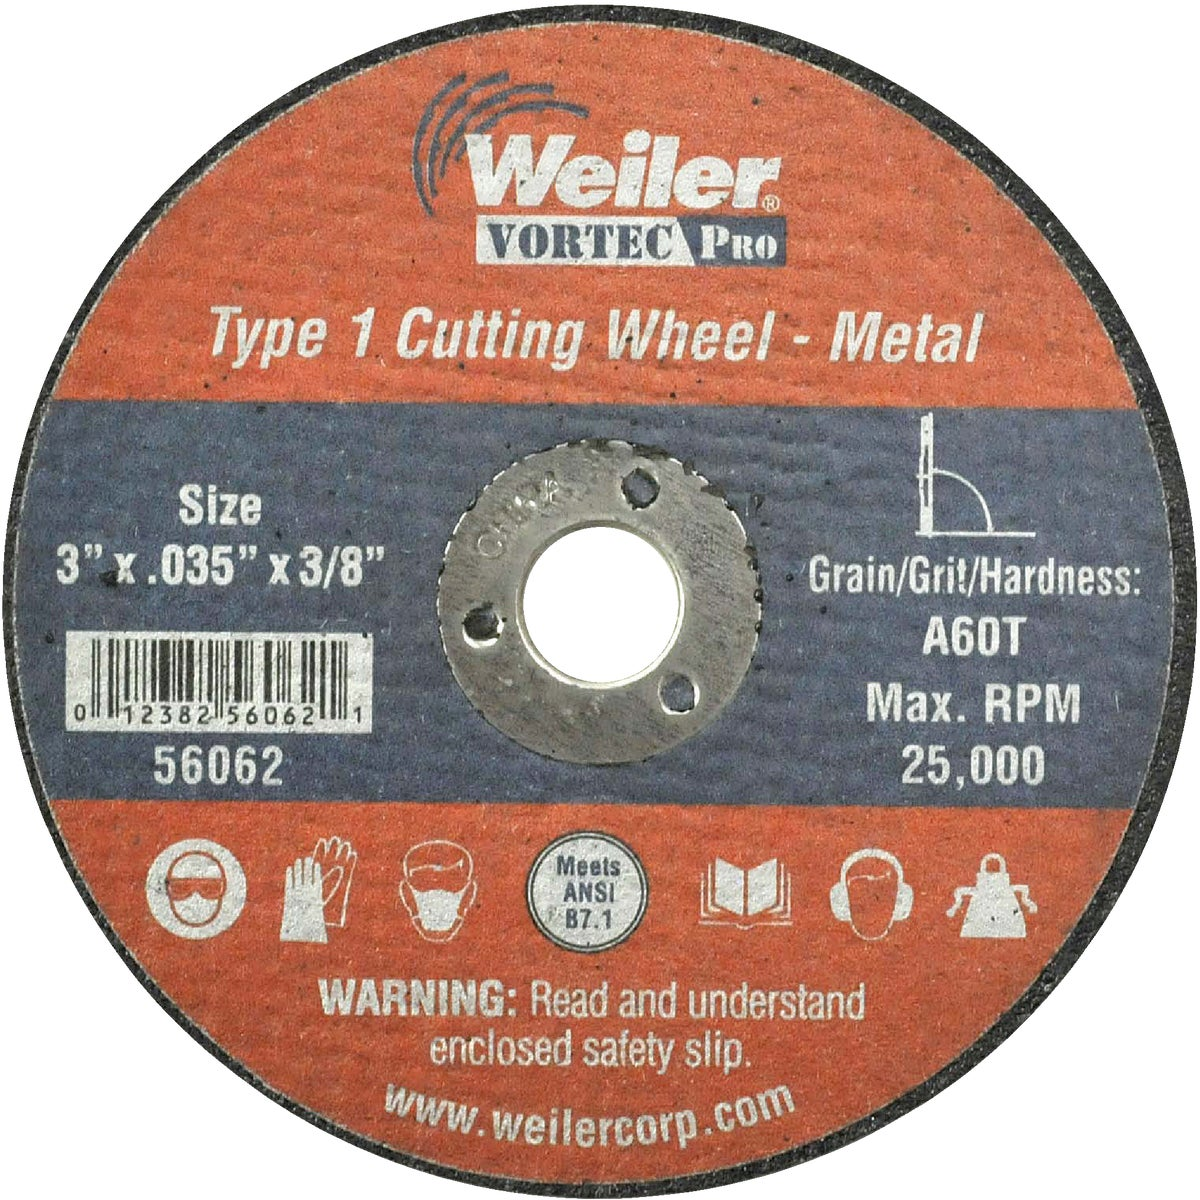 3X1/32 ABRASIVE WHEEL - 36536 by Weiler Corporation